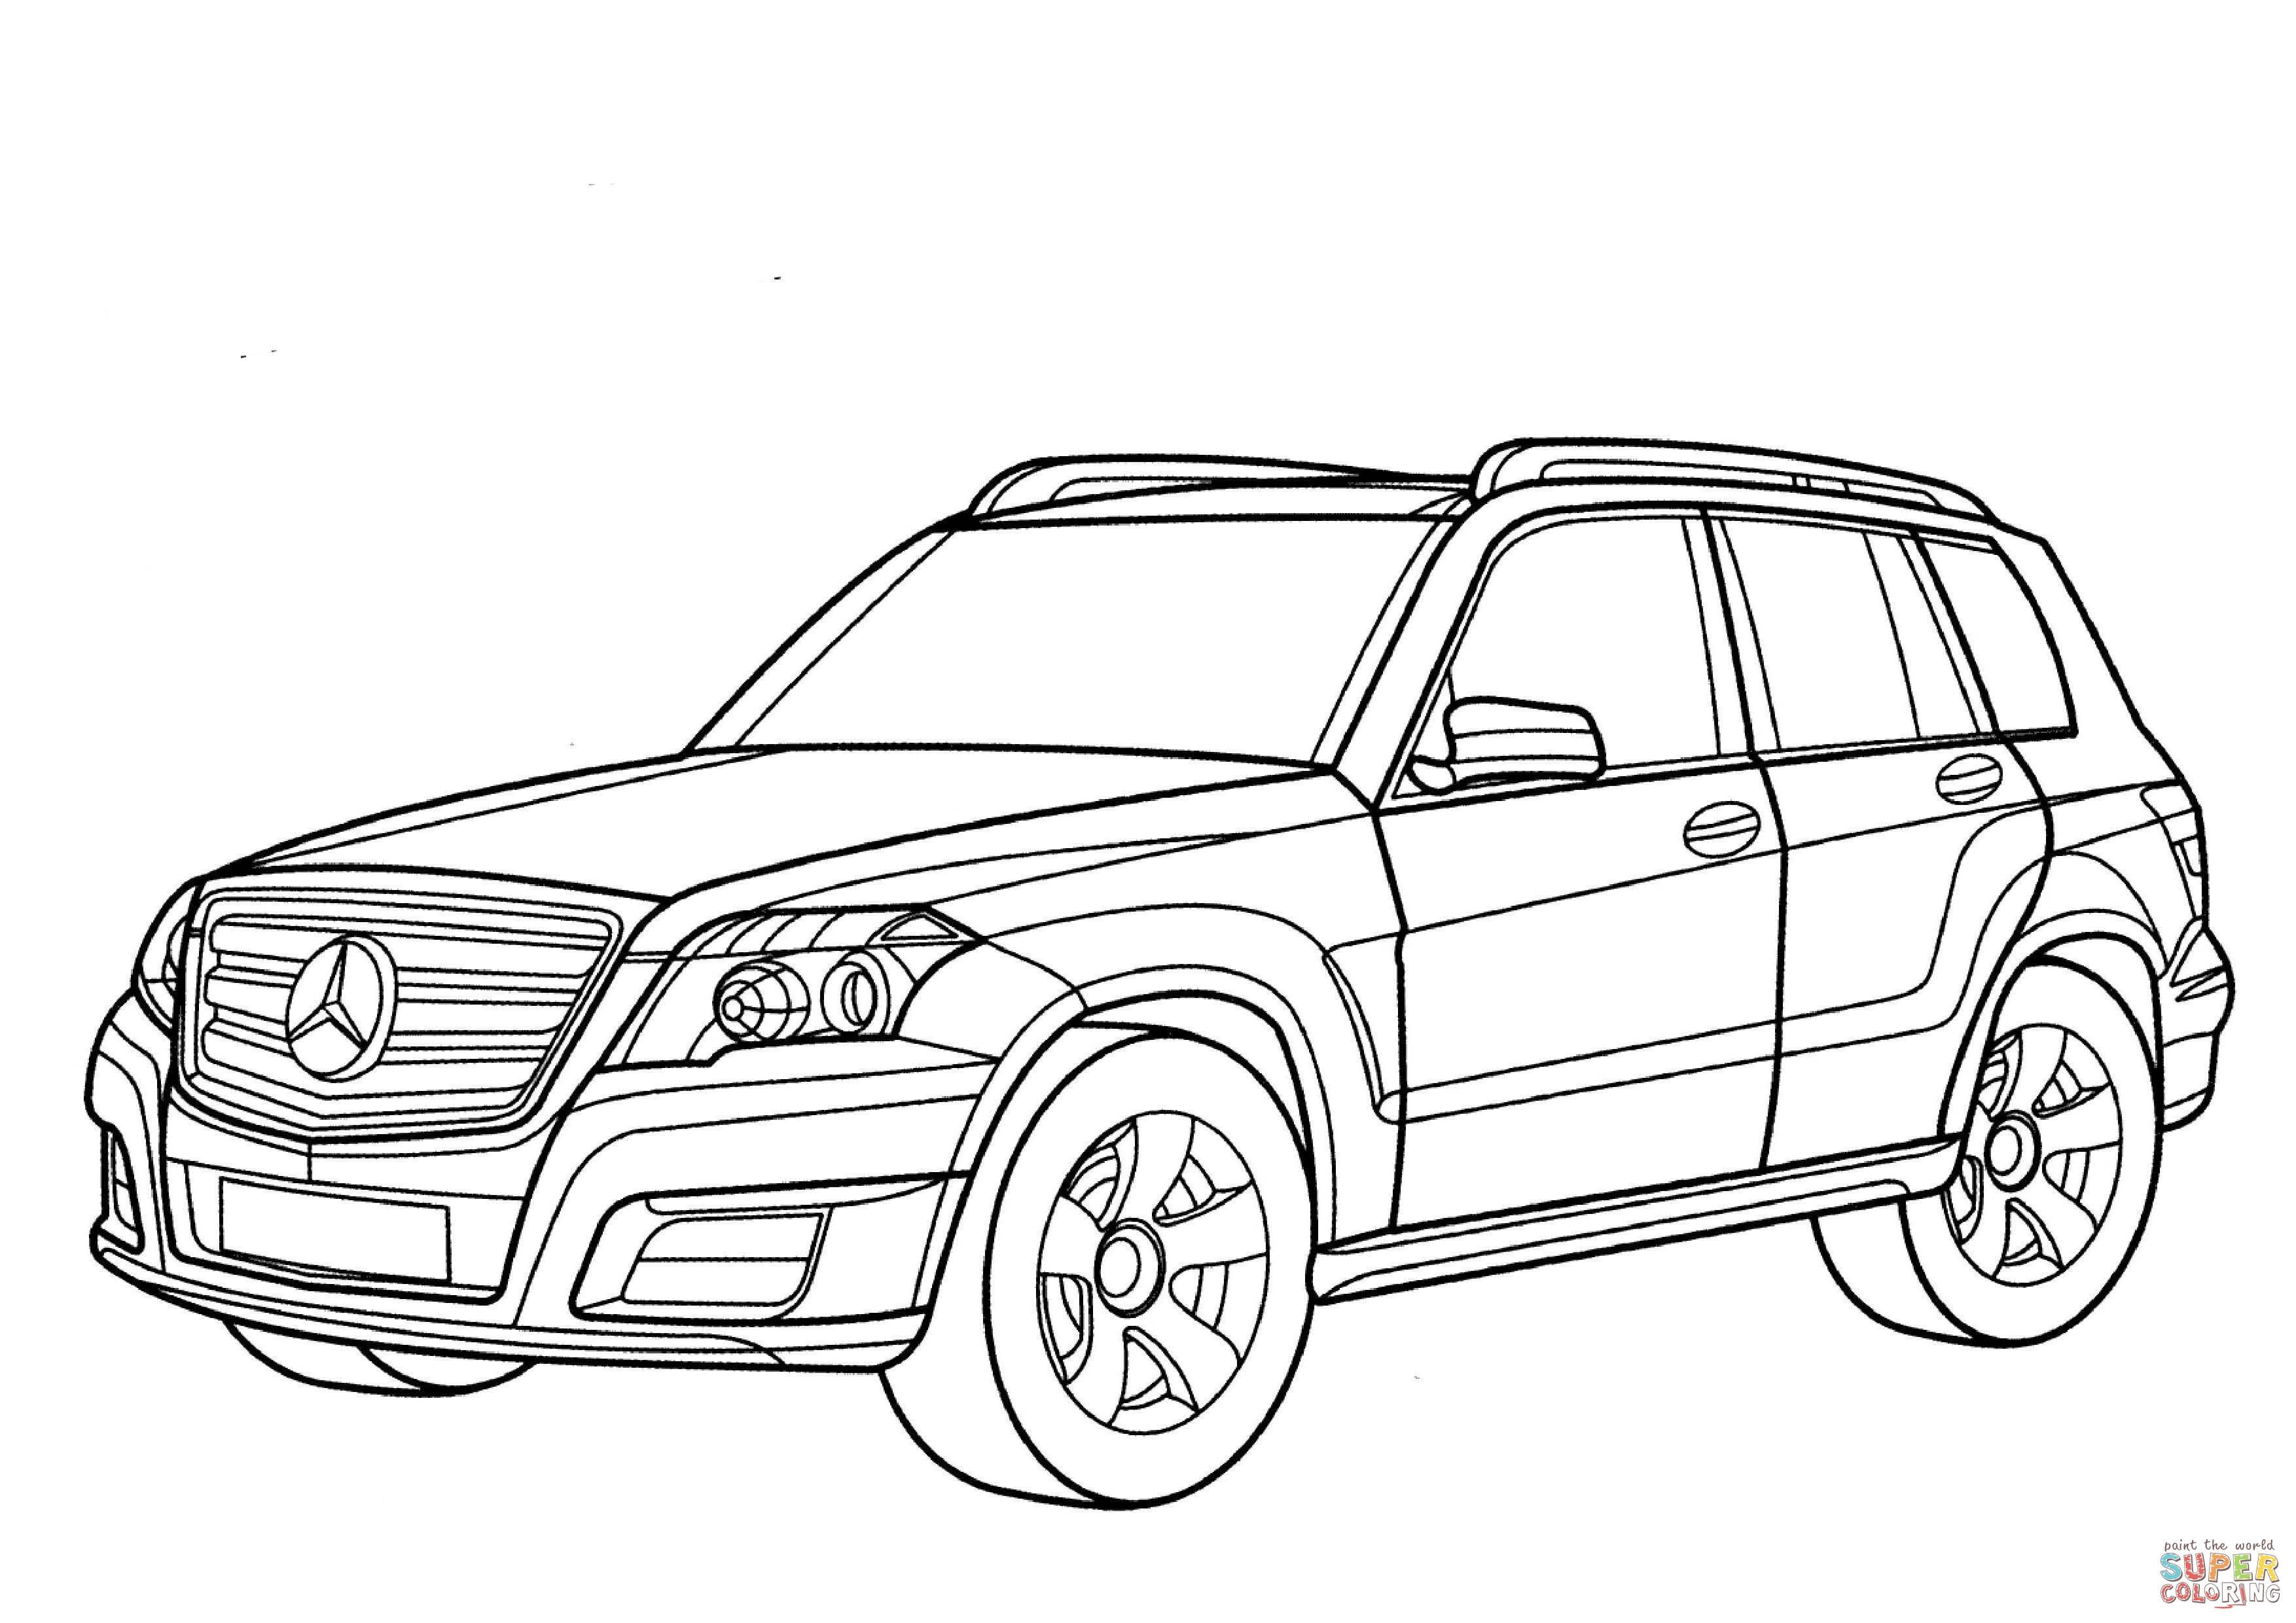 Mercedes Glk Class Coloring Page Free Printable Coloring Pages